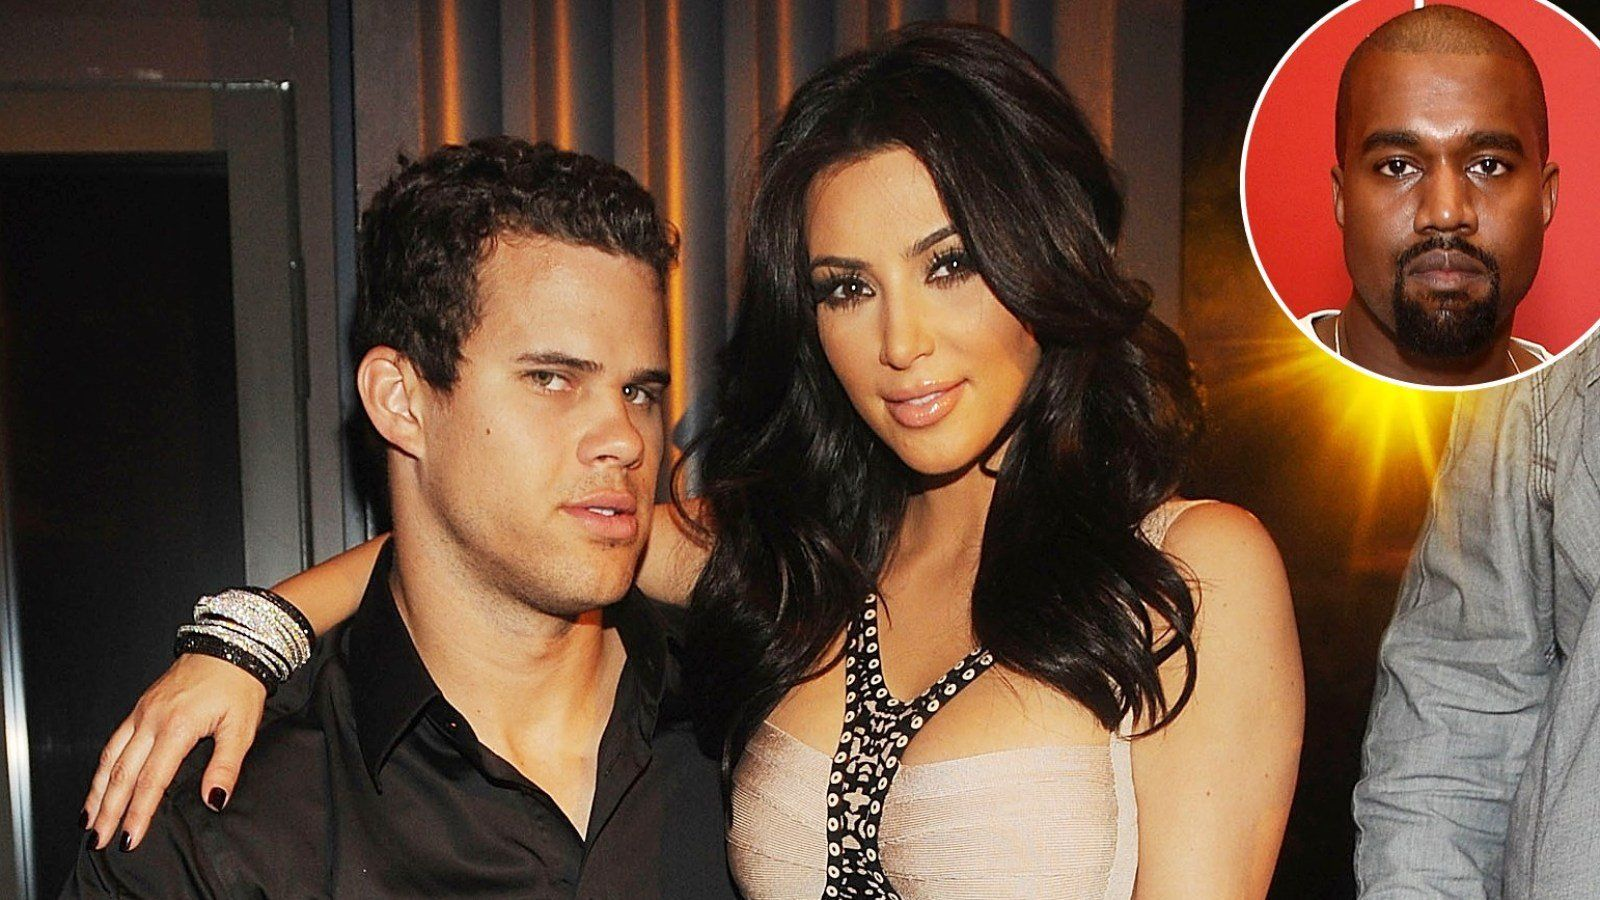 Kuwk Kanye West Throws Shade At Wife Kim S Ex Kris Humphries Raves About How Heavenly Great And Magnificent Their Marriage Is Kim Kardashian Kris Humphries Kim Kardashian Engagement Ring Kim Kardashian